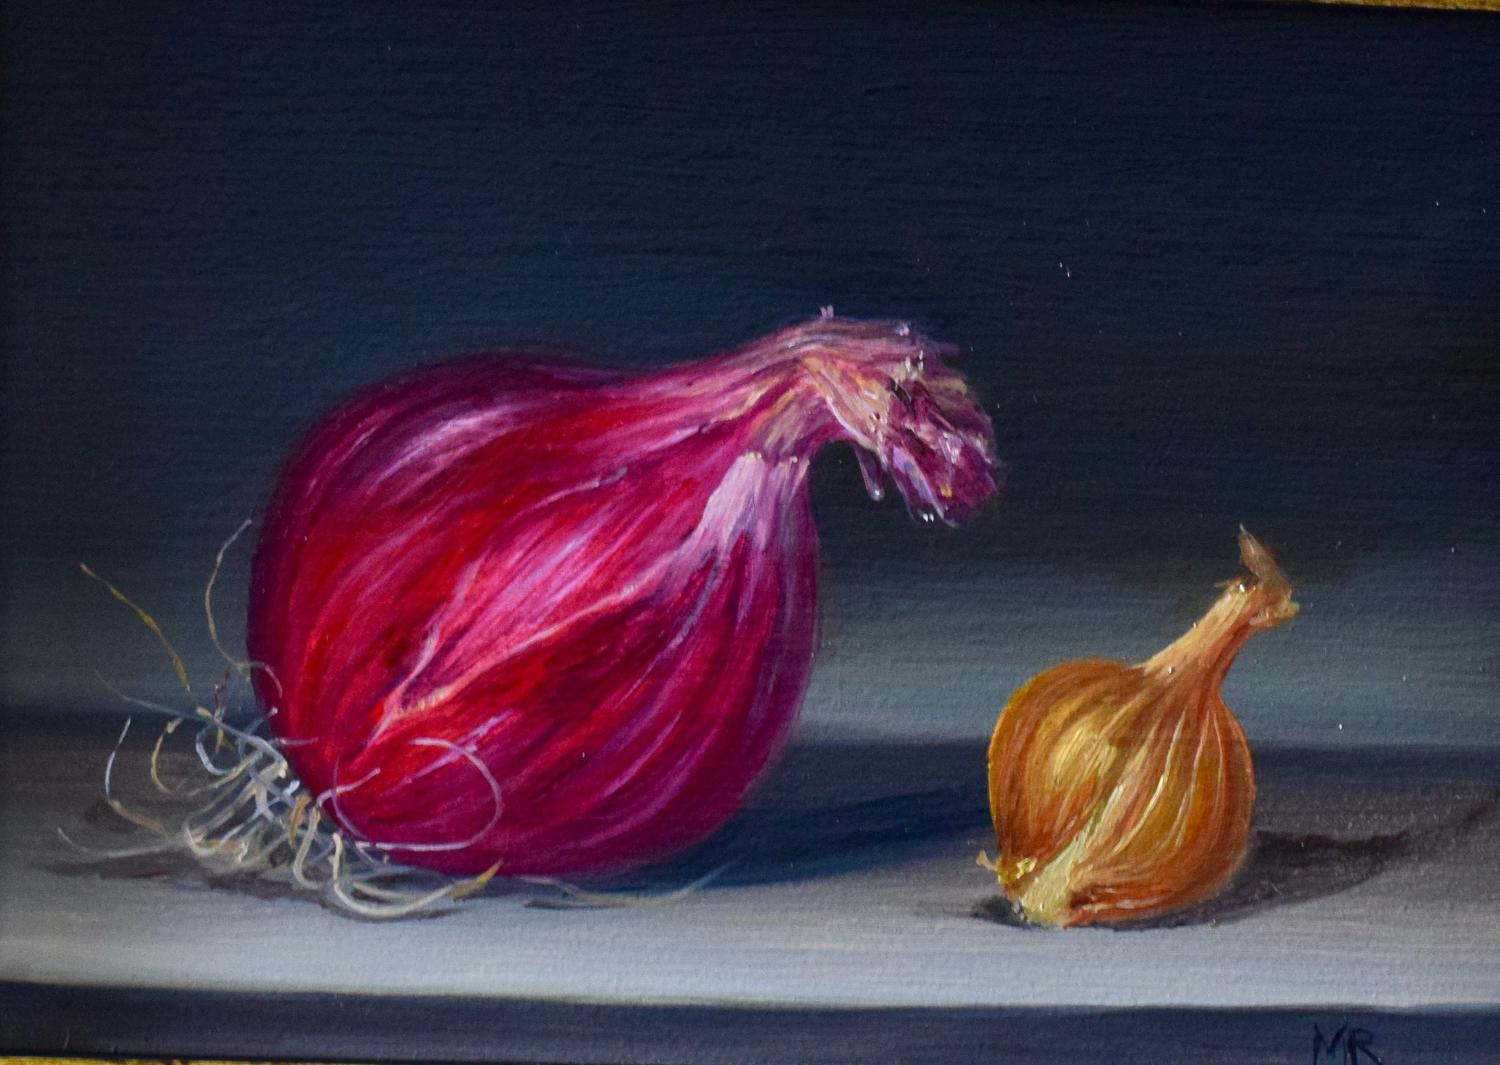 Red onion and little brown onion